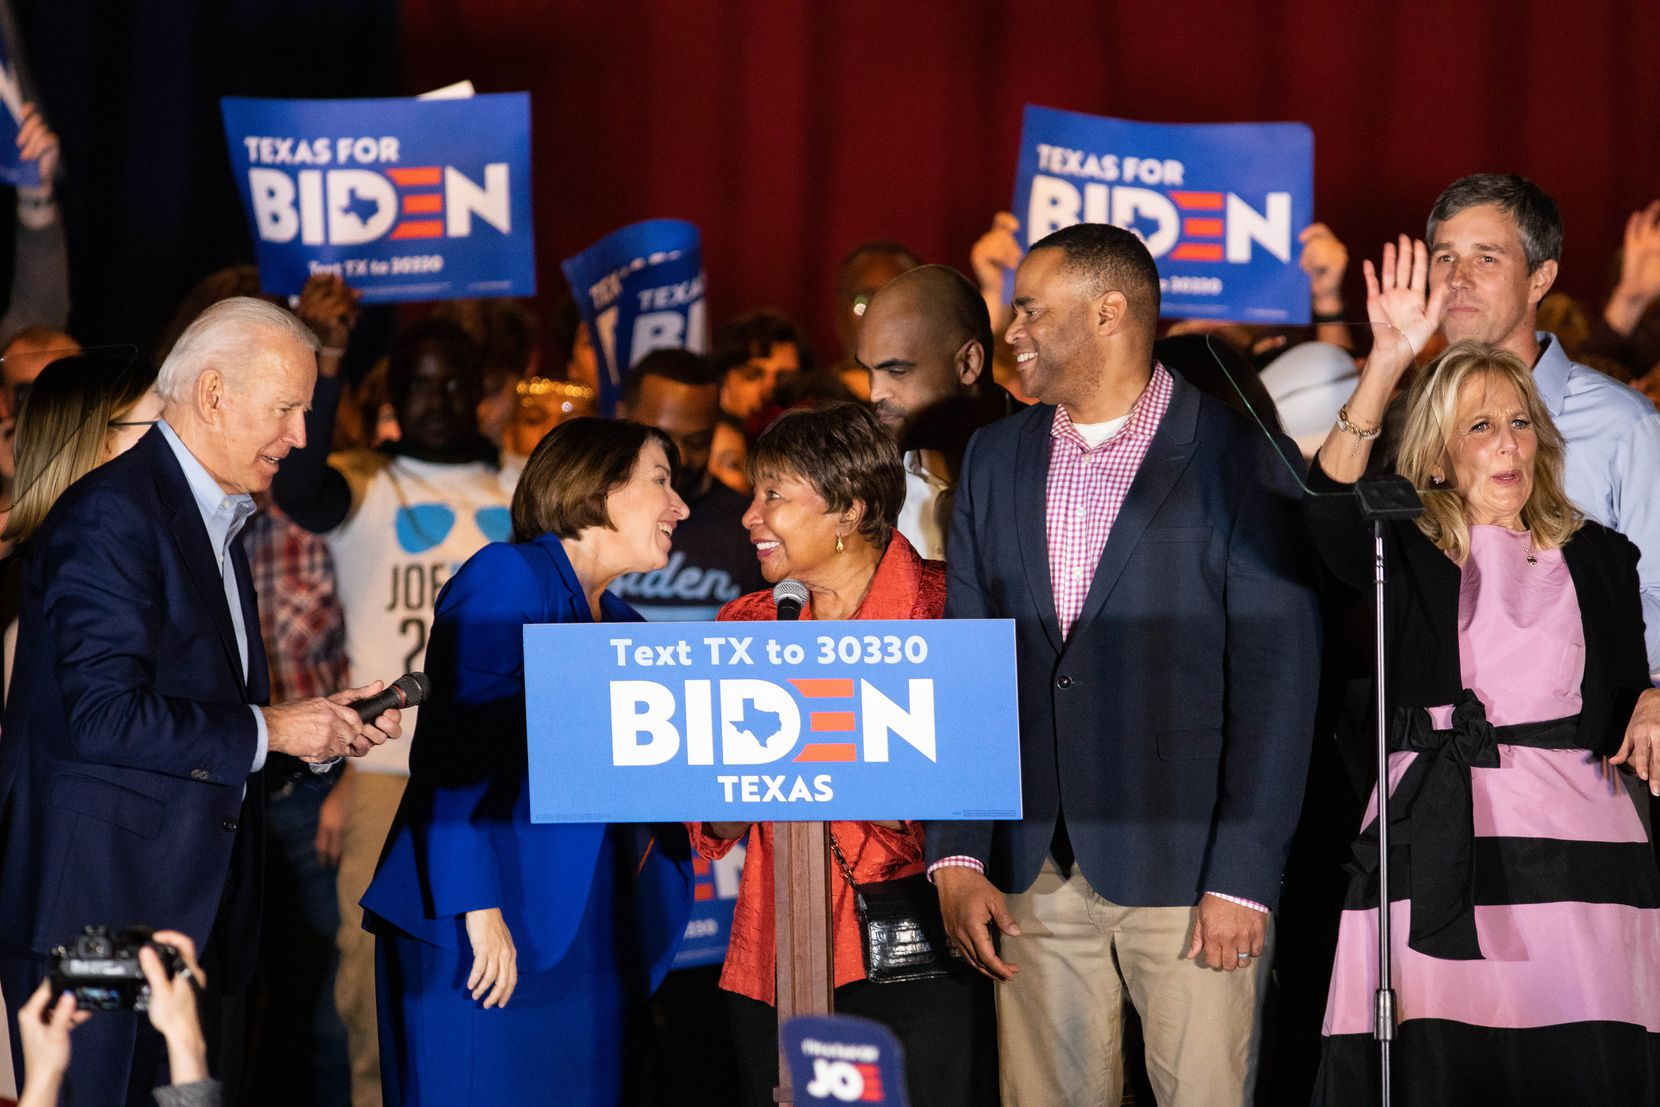 Democratic presidential primary candidate Joe Biden (far left) was endorsed by (from left) Sen. Amy Klobuchar (D-MN), Rep. Eddie Bernice Johnson (D-Dallas), Rep. Colin Allred (D-Dallas), Rep. Mark Veasey (D-Fort Worth) and former Rep. Beto O'Rourke of El Paso during a rally at Gilley's in Dallas on Tuesday. Biden's wife, Jill, is at far right.